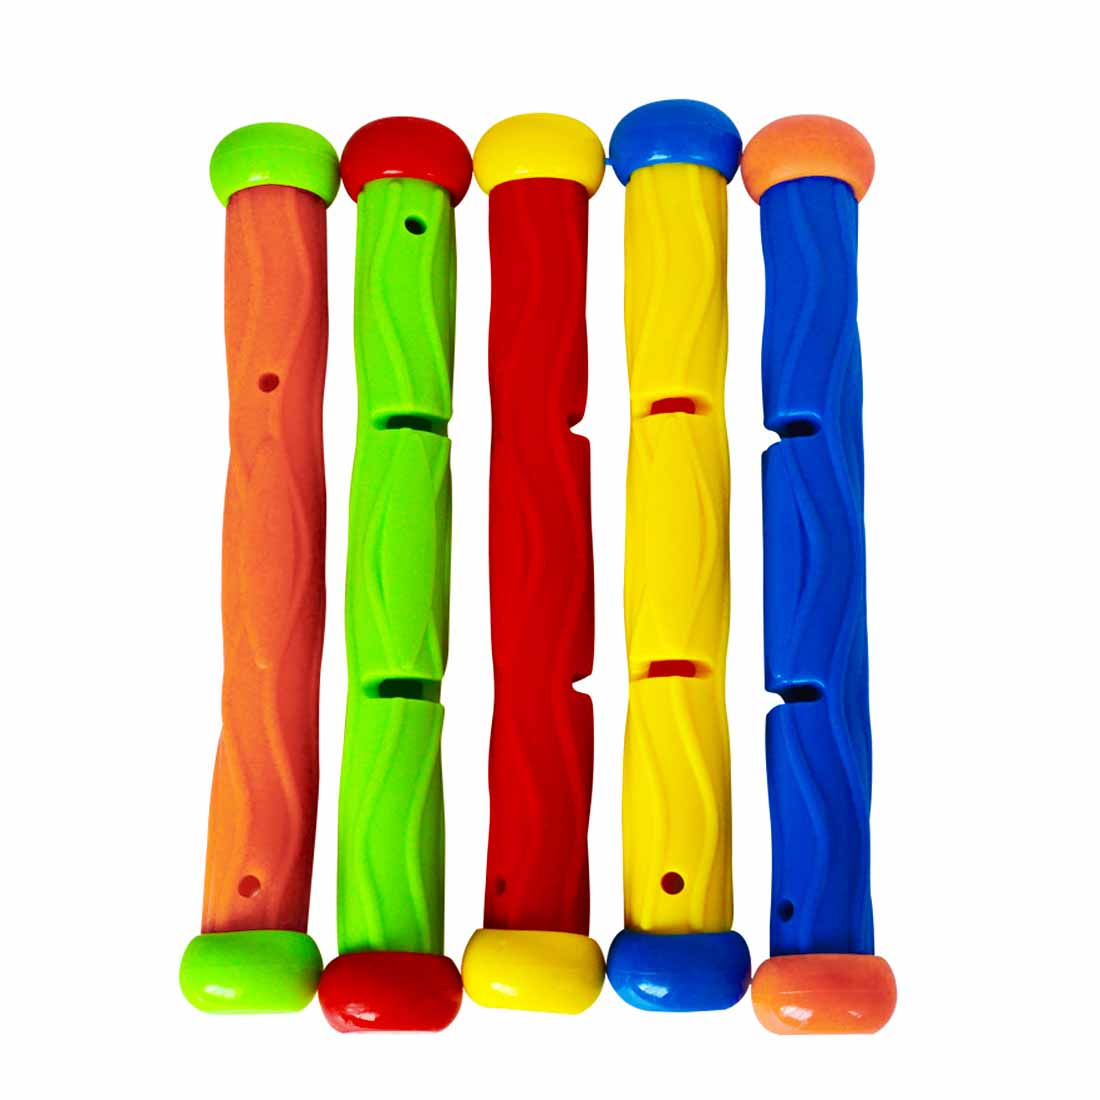 5Pcs/set Underwater Sports Swimming Pool Dive Game Stick Toys Funny Kids Children Diving Stick Toys Swimming Pool Accessories